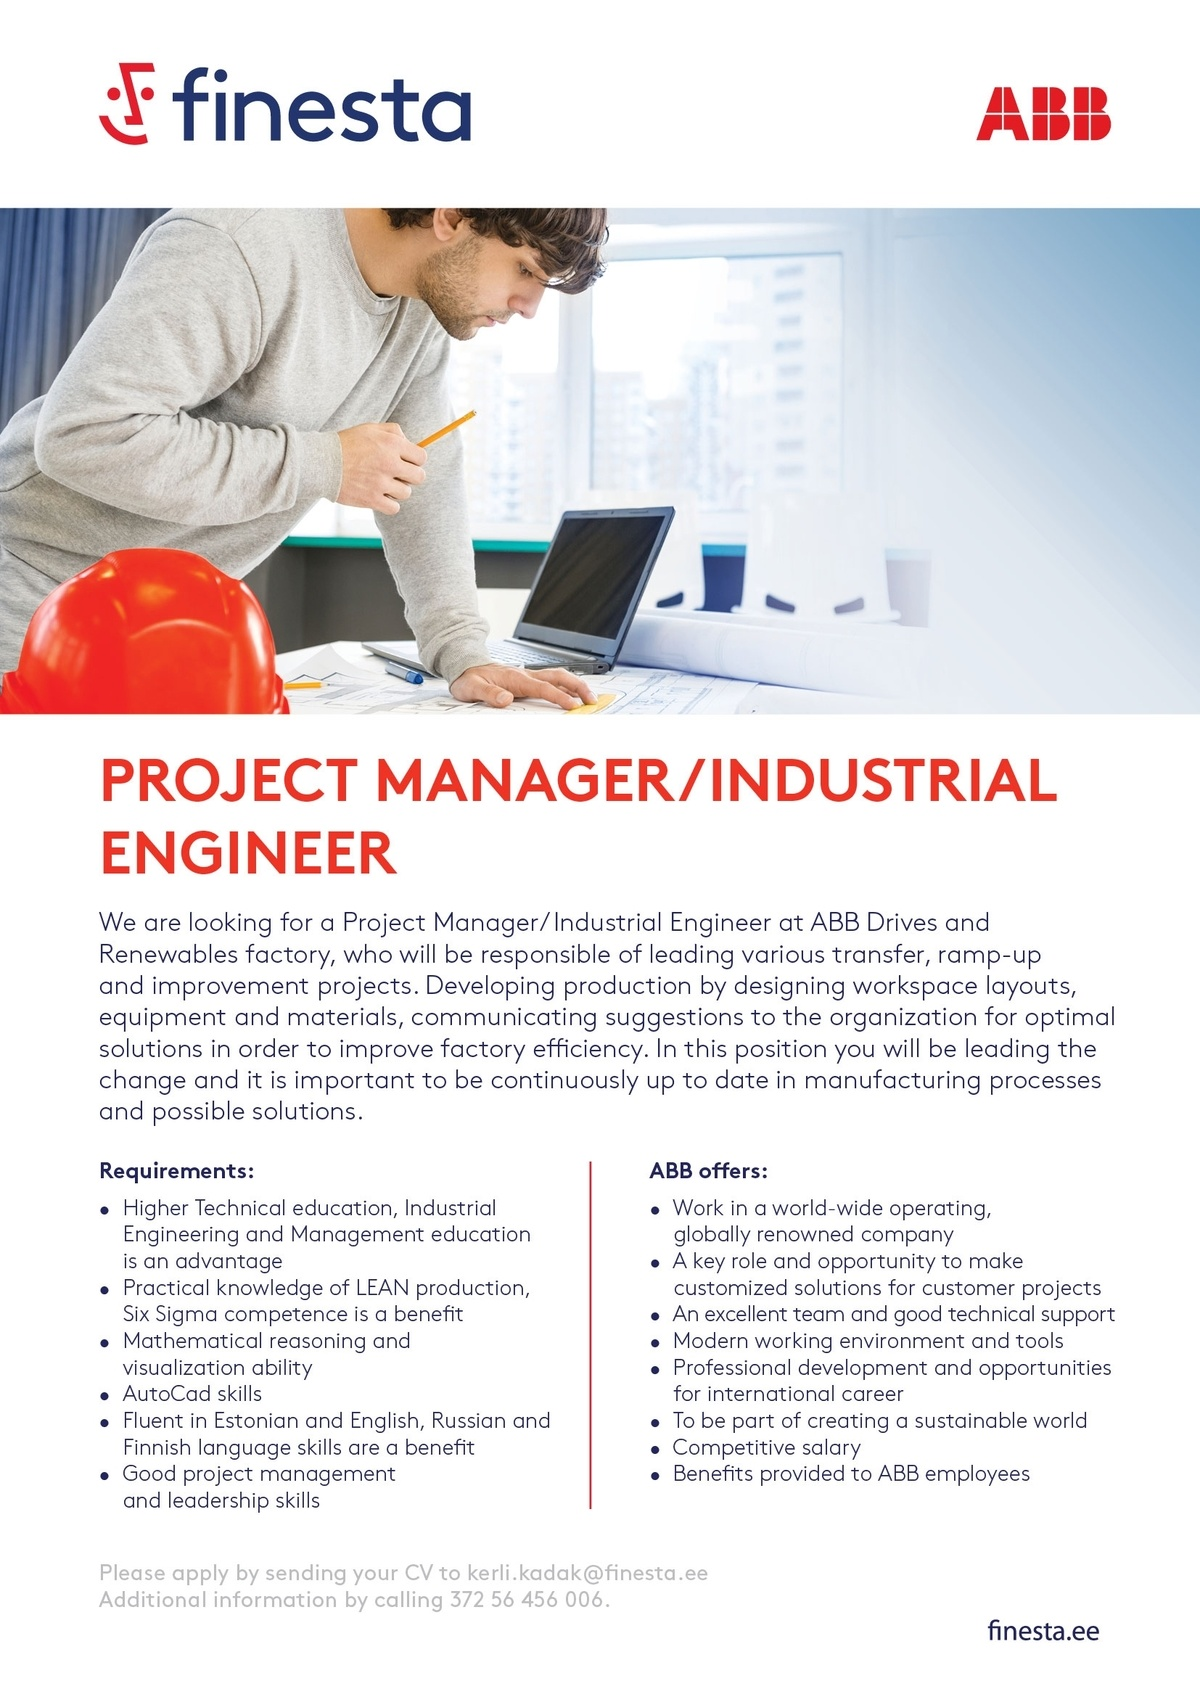 Firma nimi peidetud Project Manager/Industrial Engineer